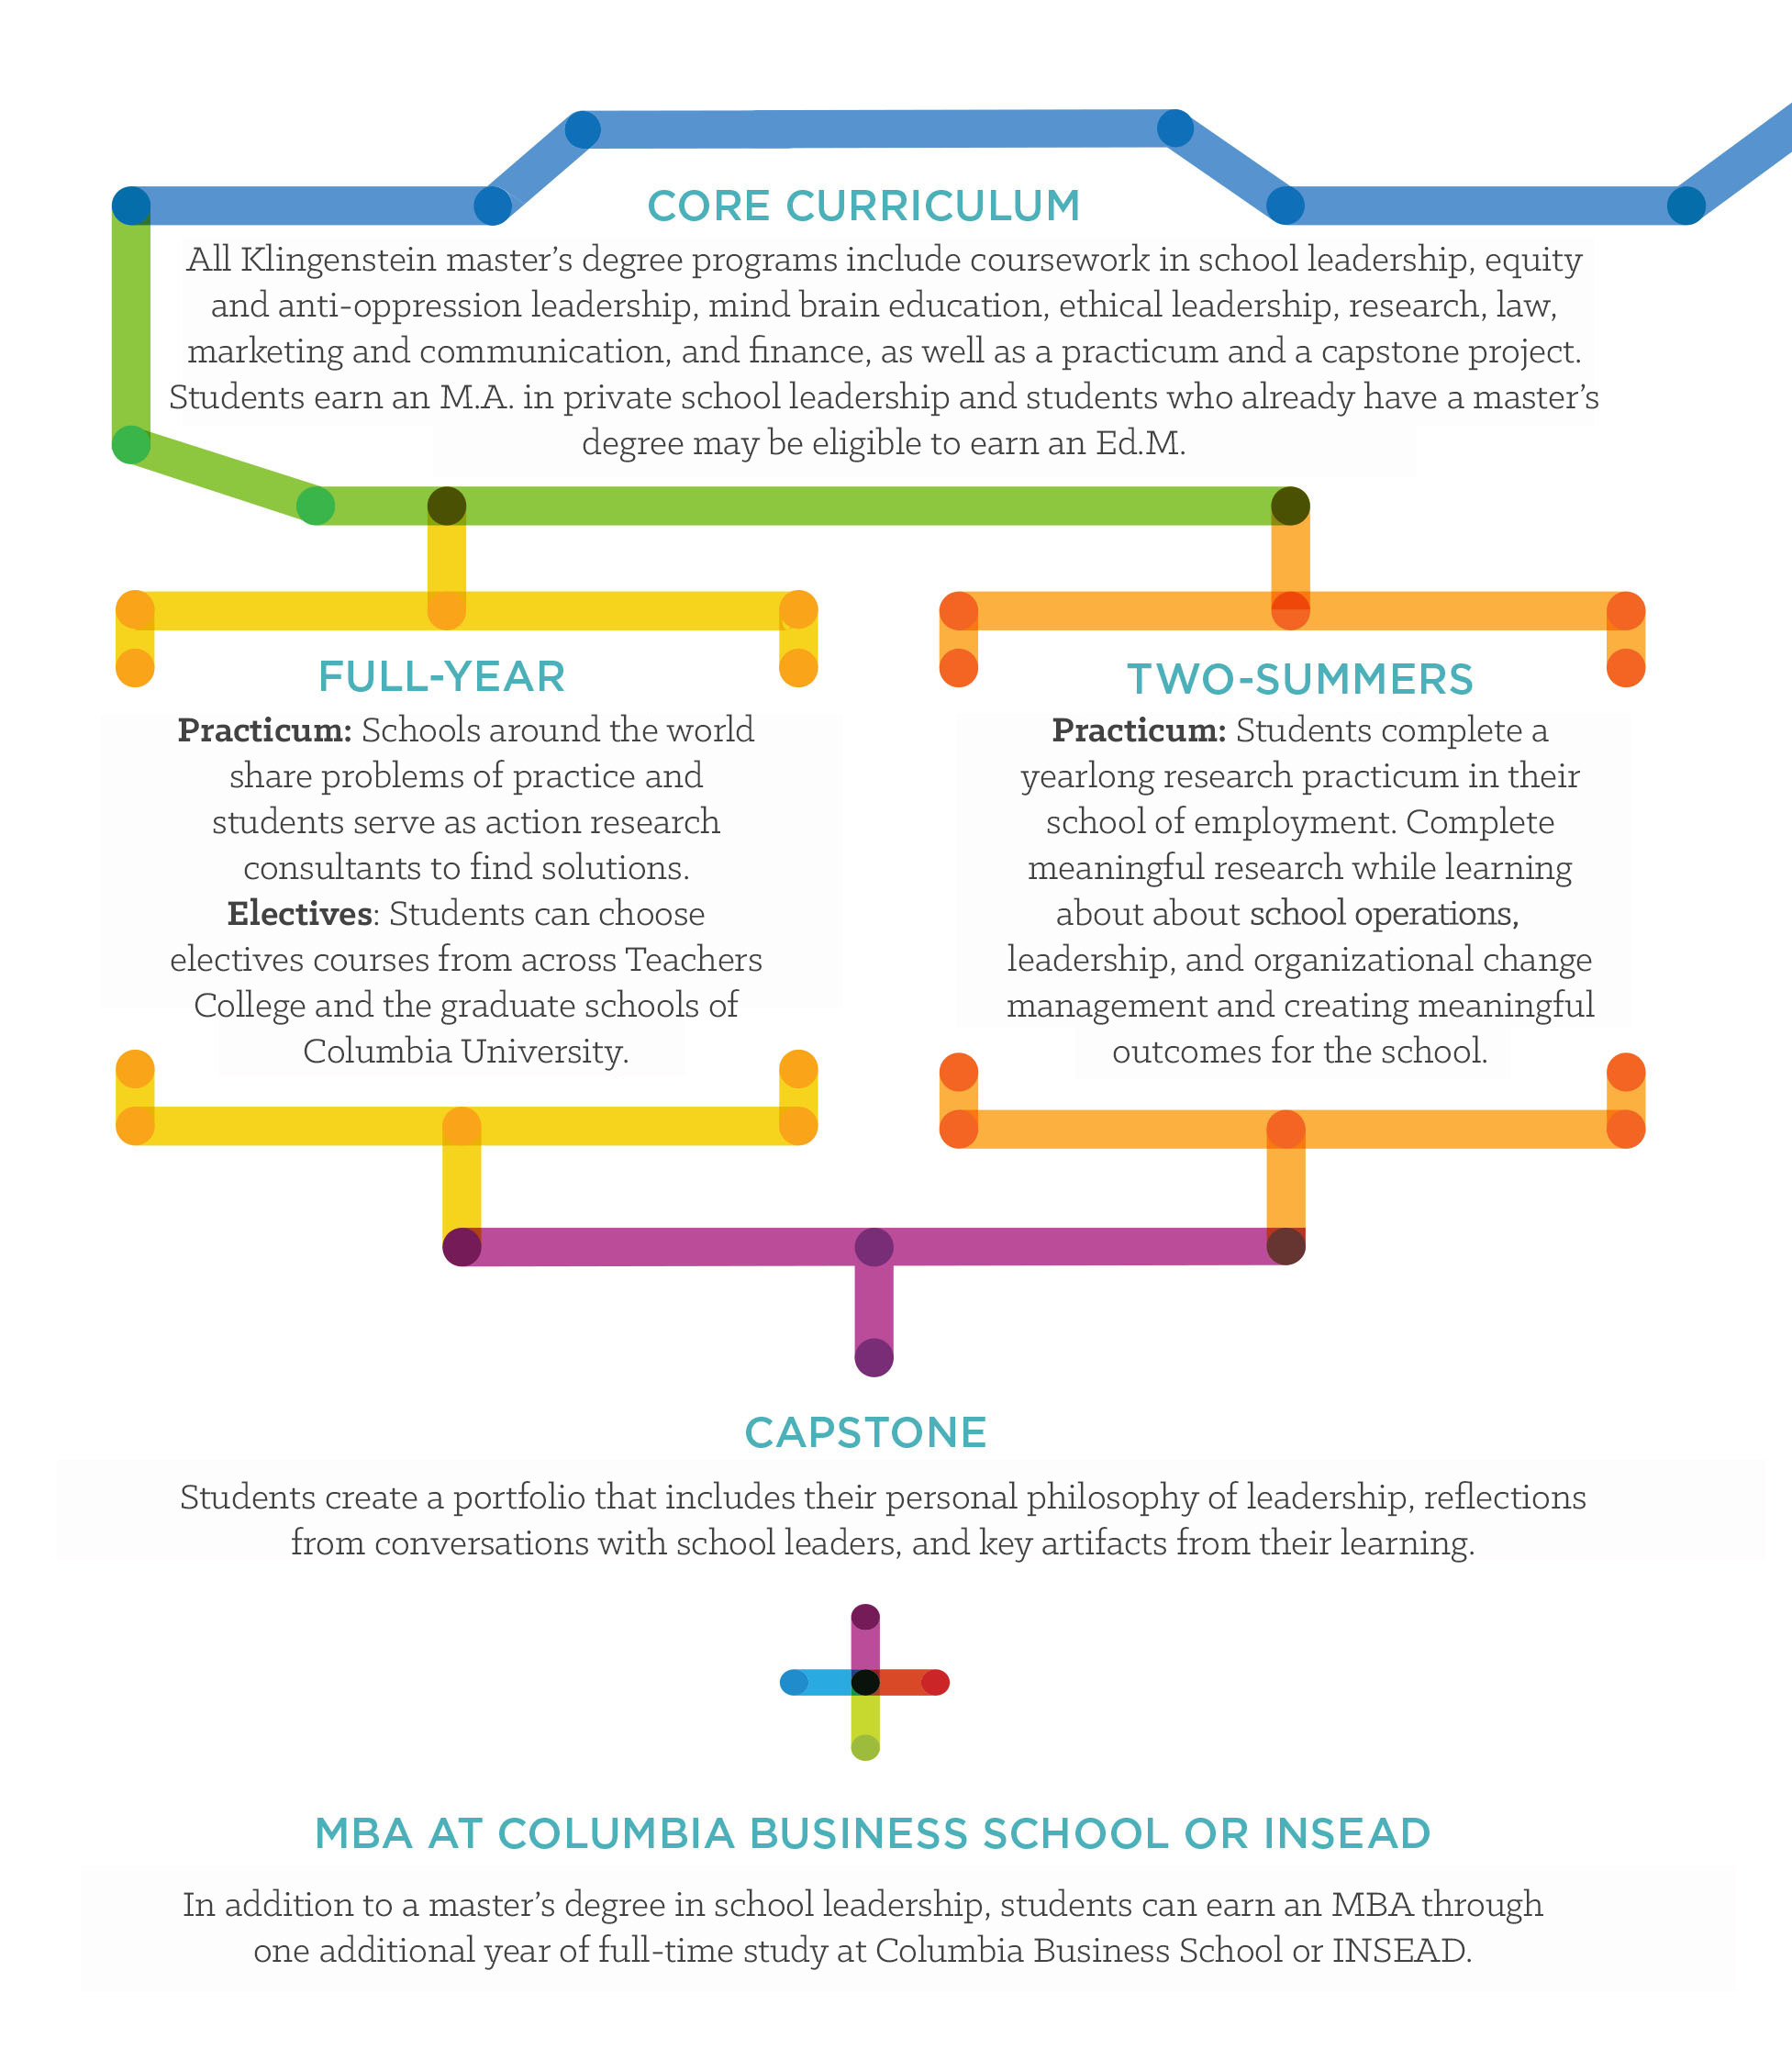 An image that outlines the similarities and differences between the Full-Year and Two-Summers programs.